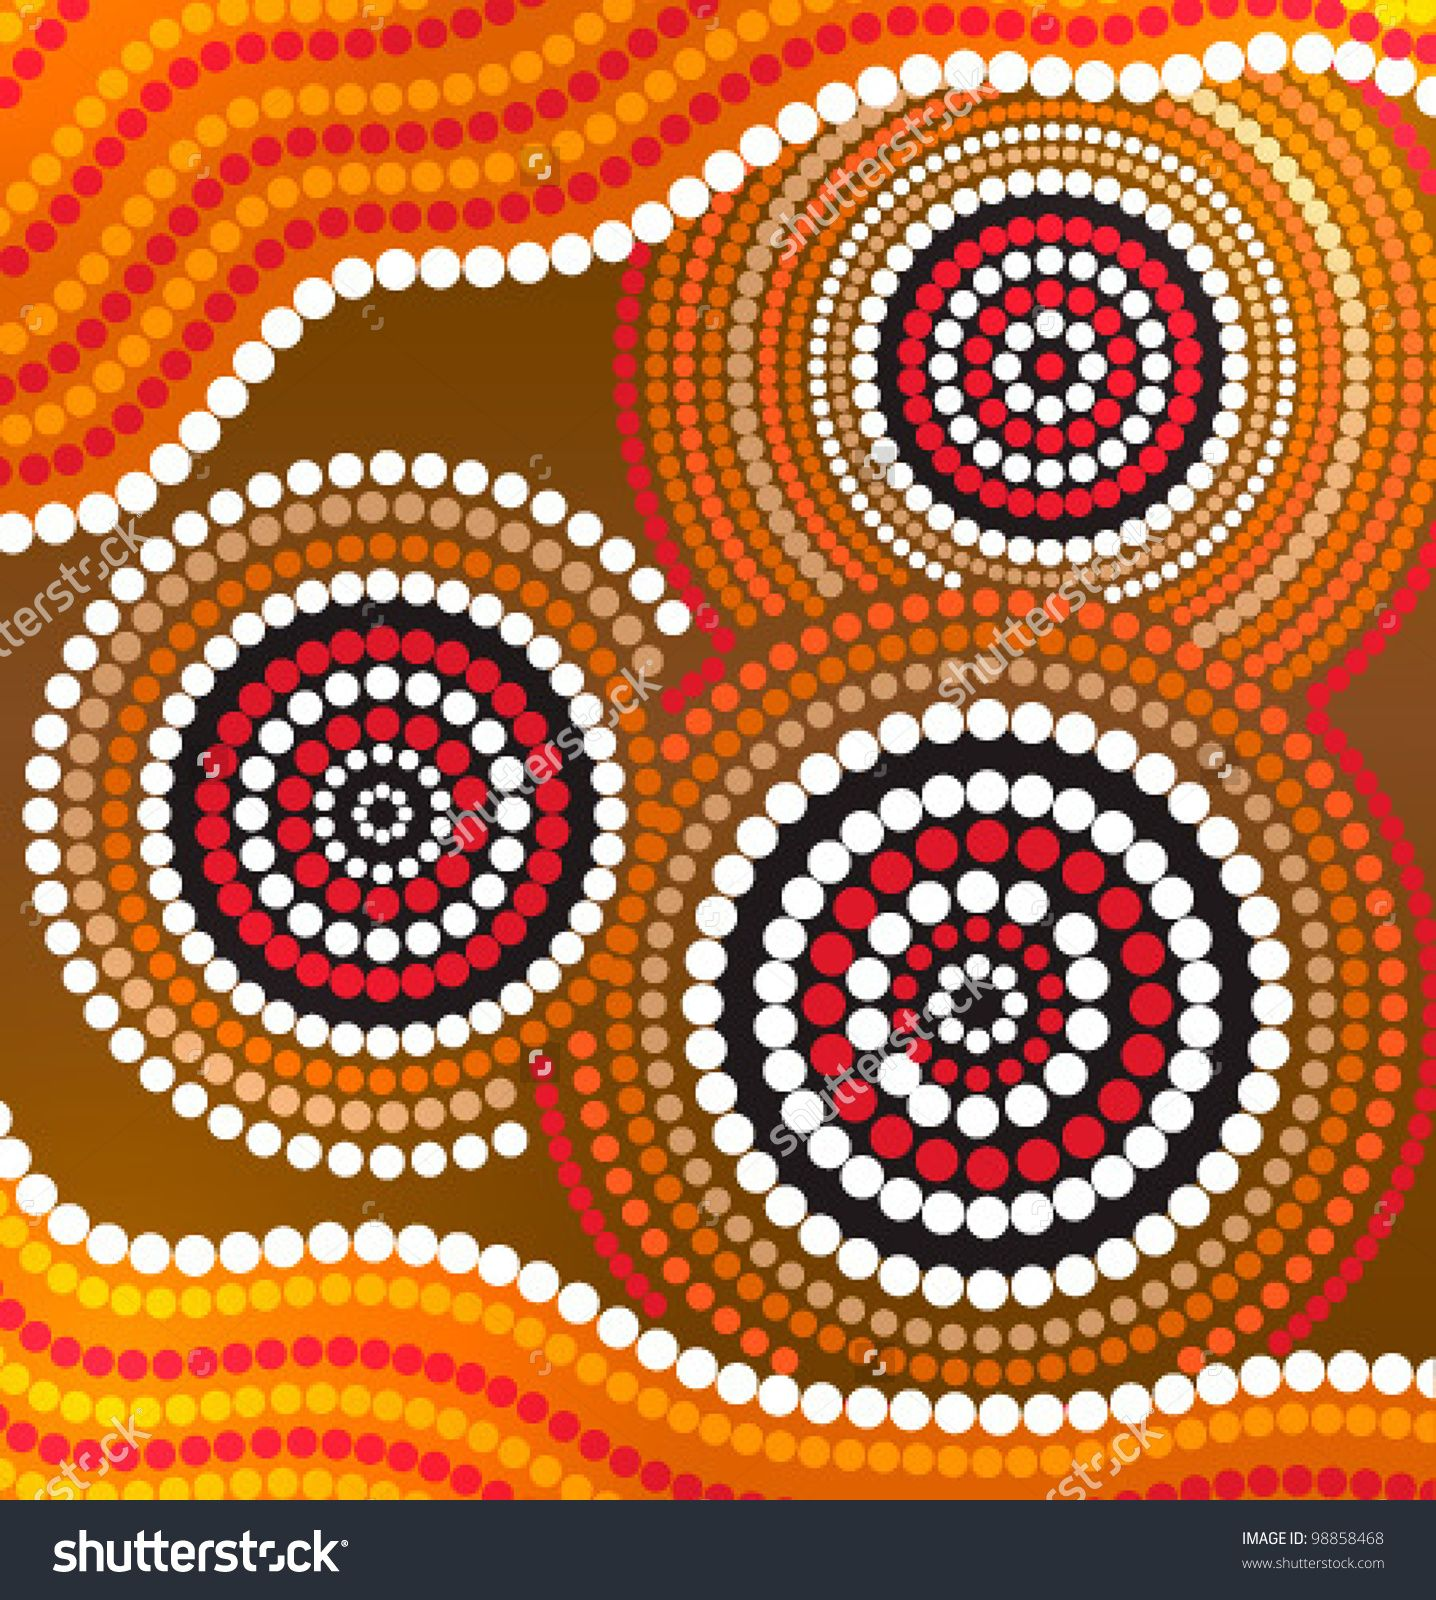 Image result for australian aboriginal art aboriginal